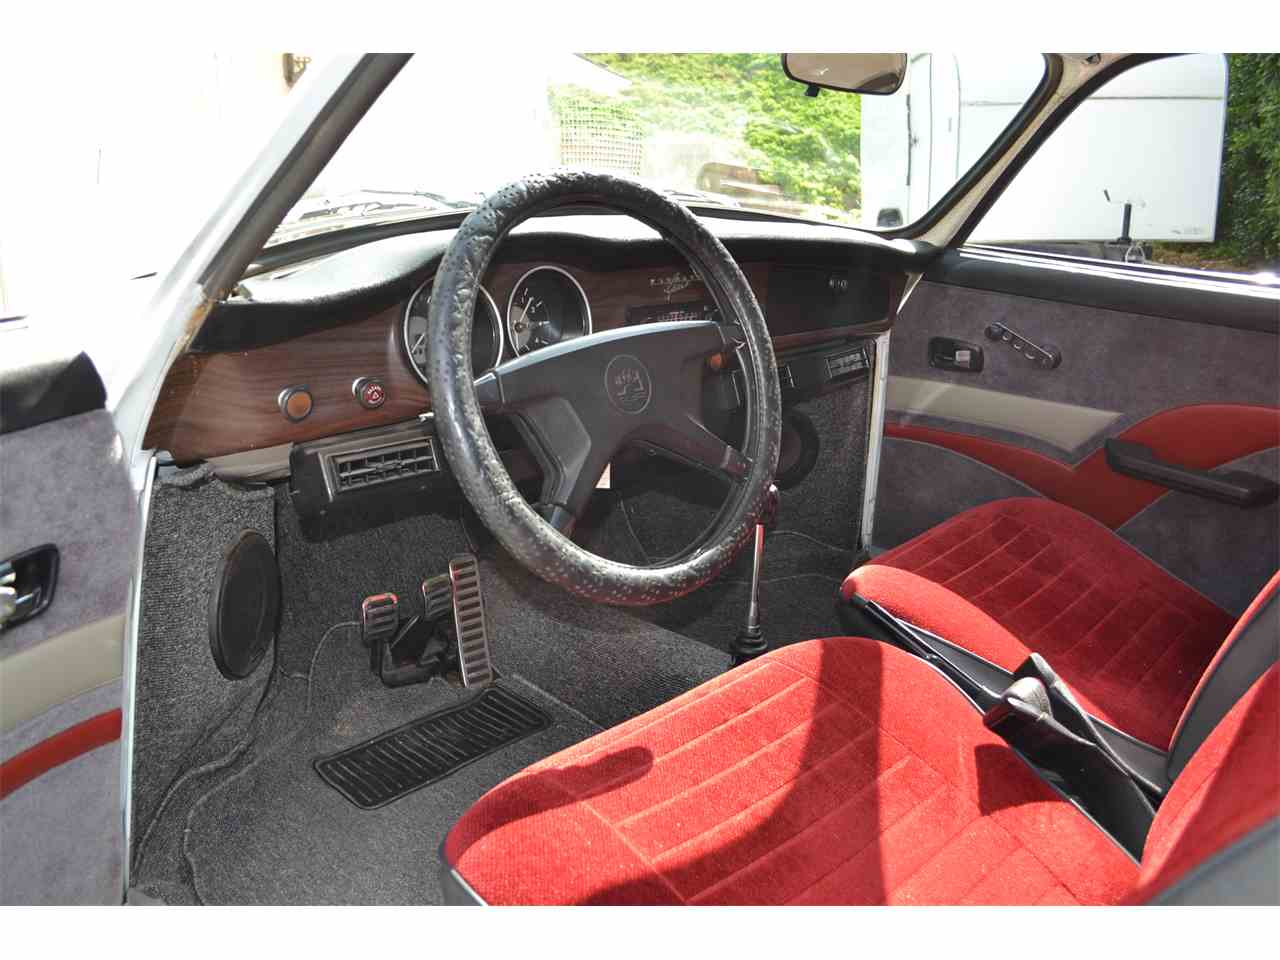 Large Picture of '74 Karmann Ghia - $8,500.00 Offered by a Private Seller - LSR1